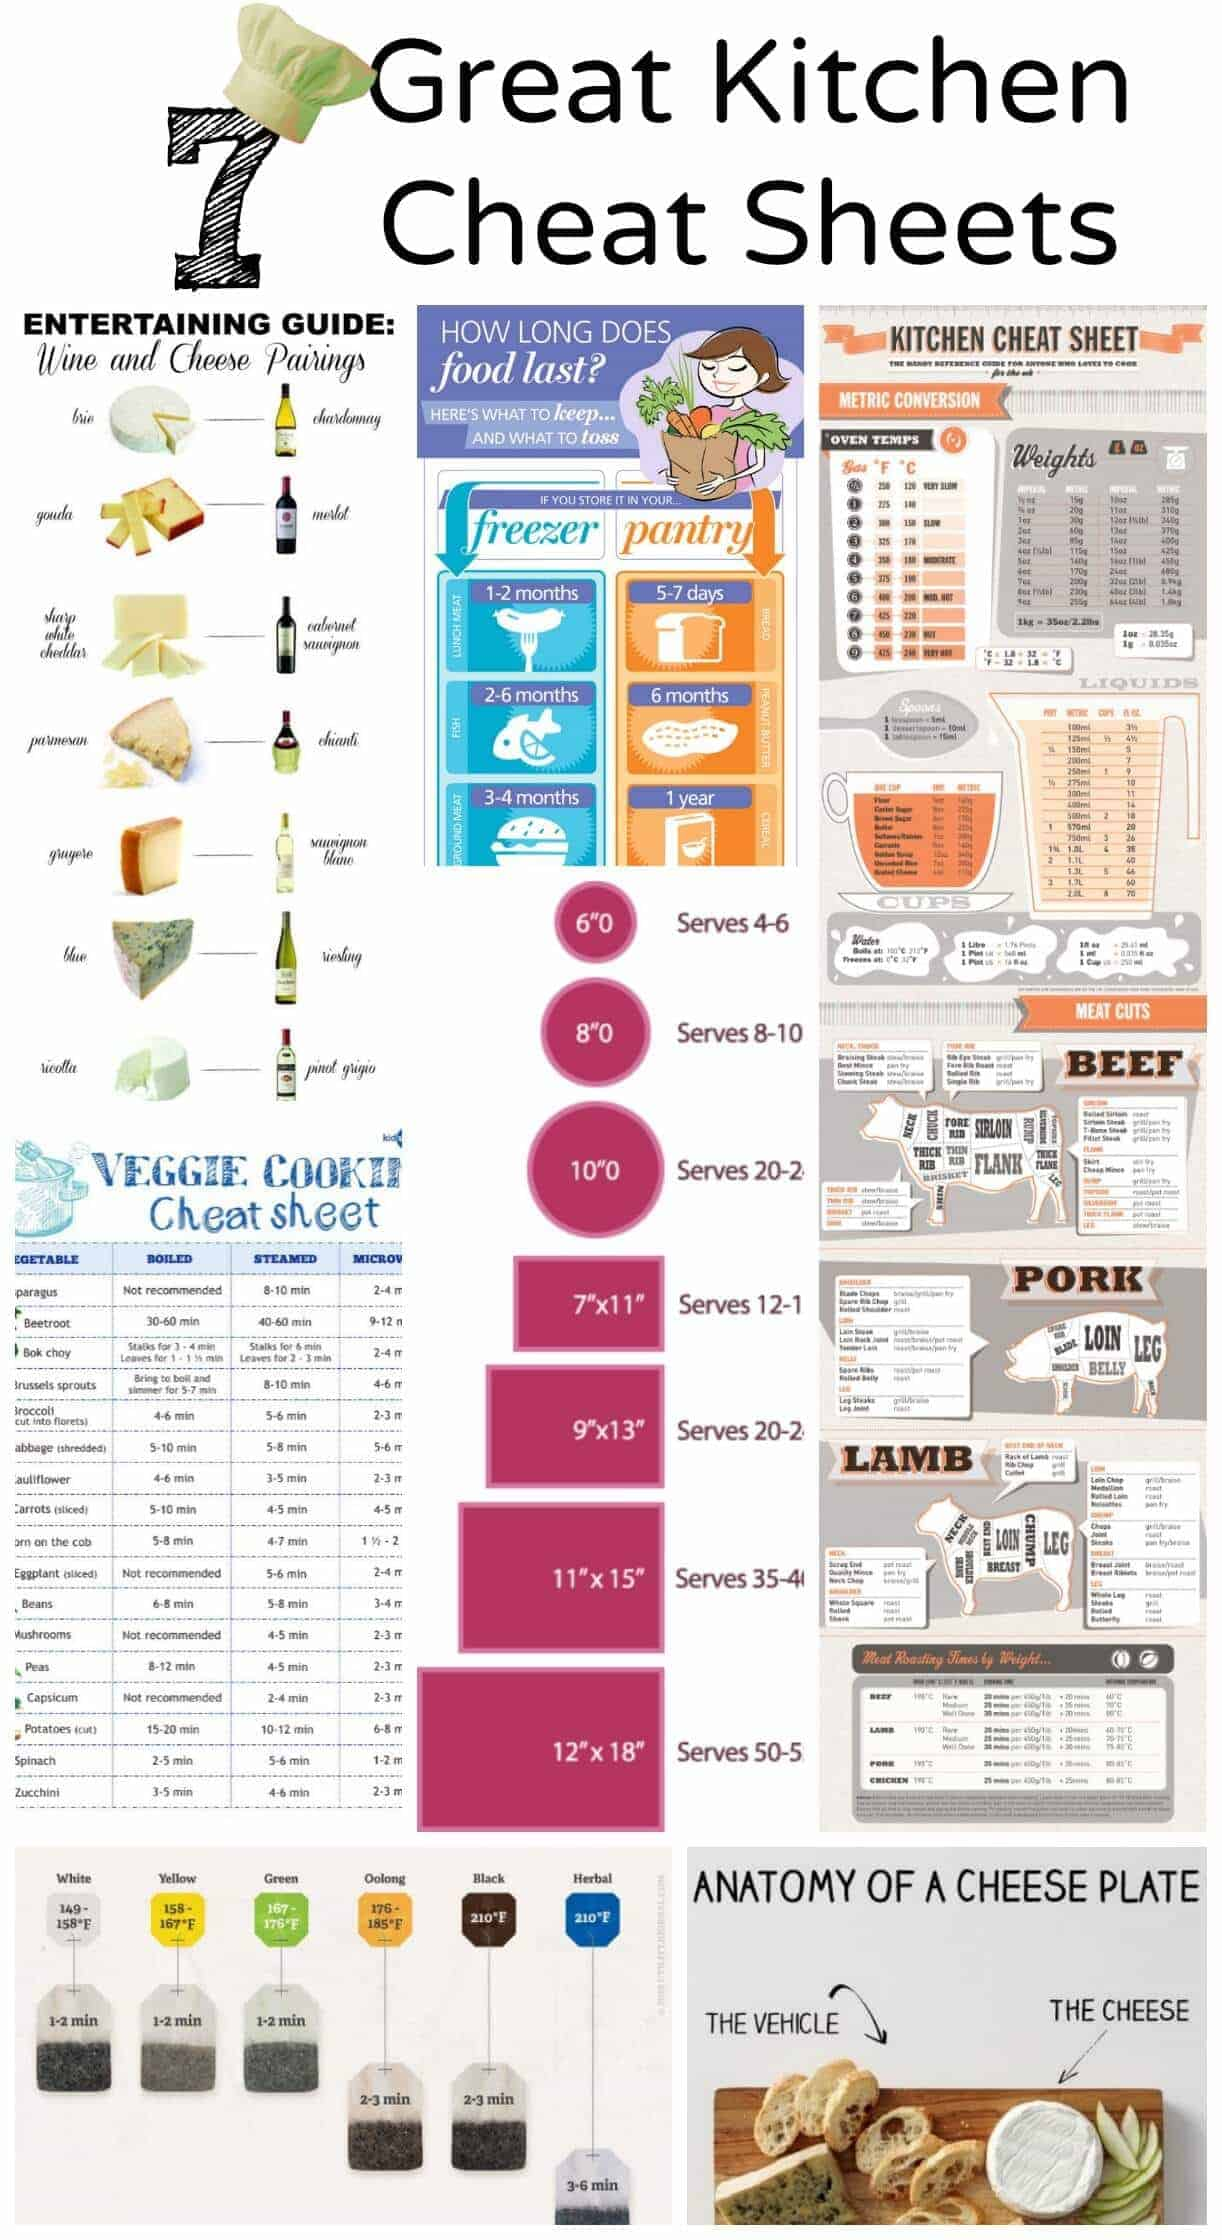 7 Great Kitchen Cheat Sheets